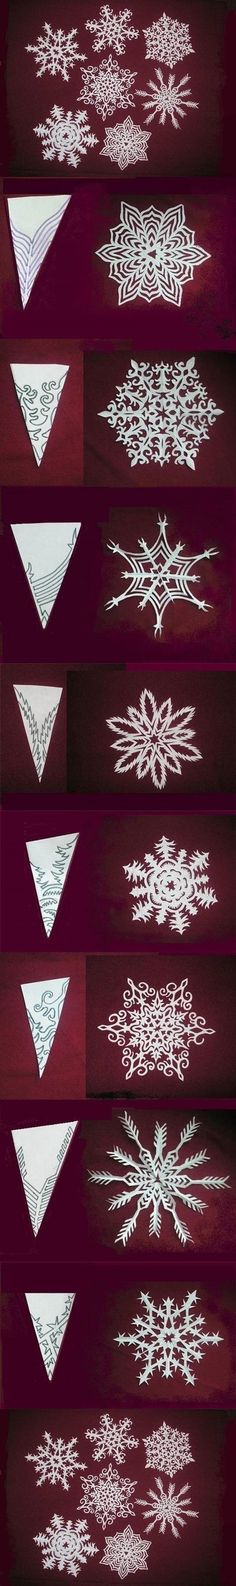 paper Snowflakes pattern Wonderful DIY Paper Snowflakes With Pattern